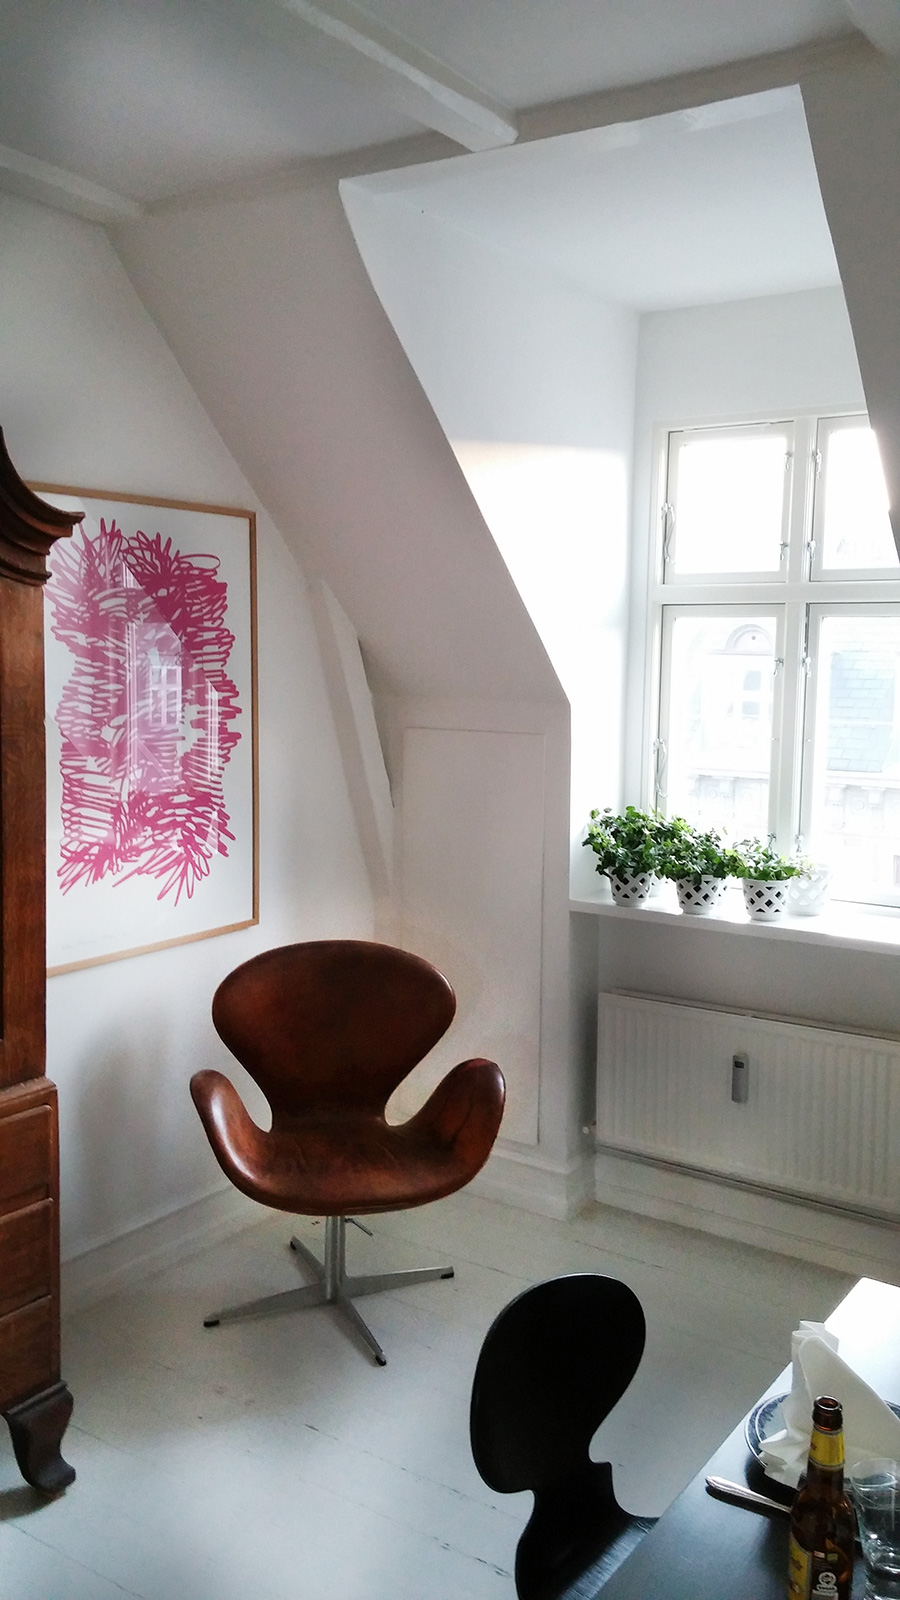 Small Sitting Area with Brown Chair and Window